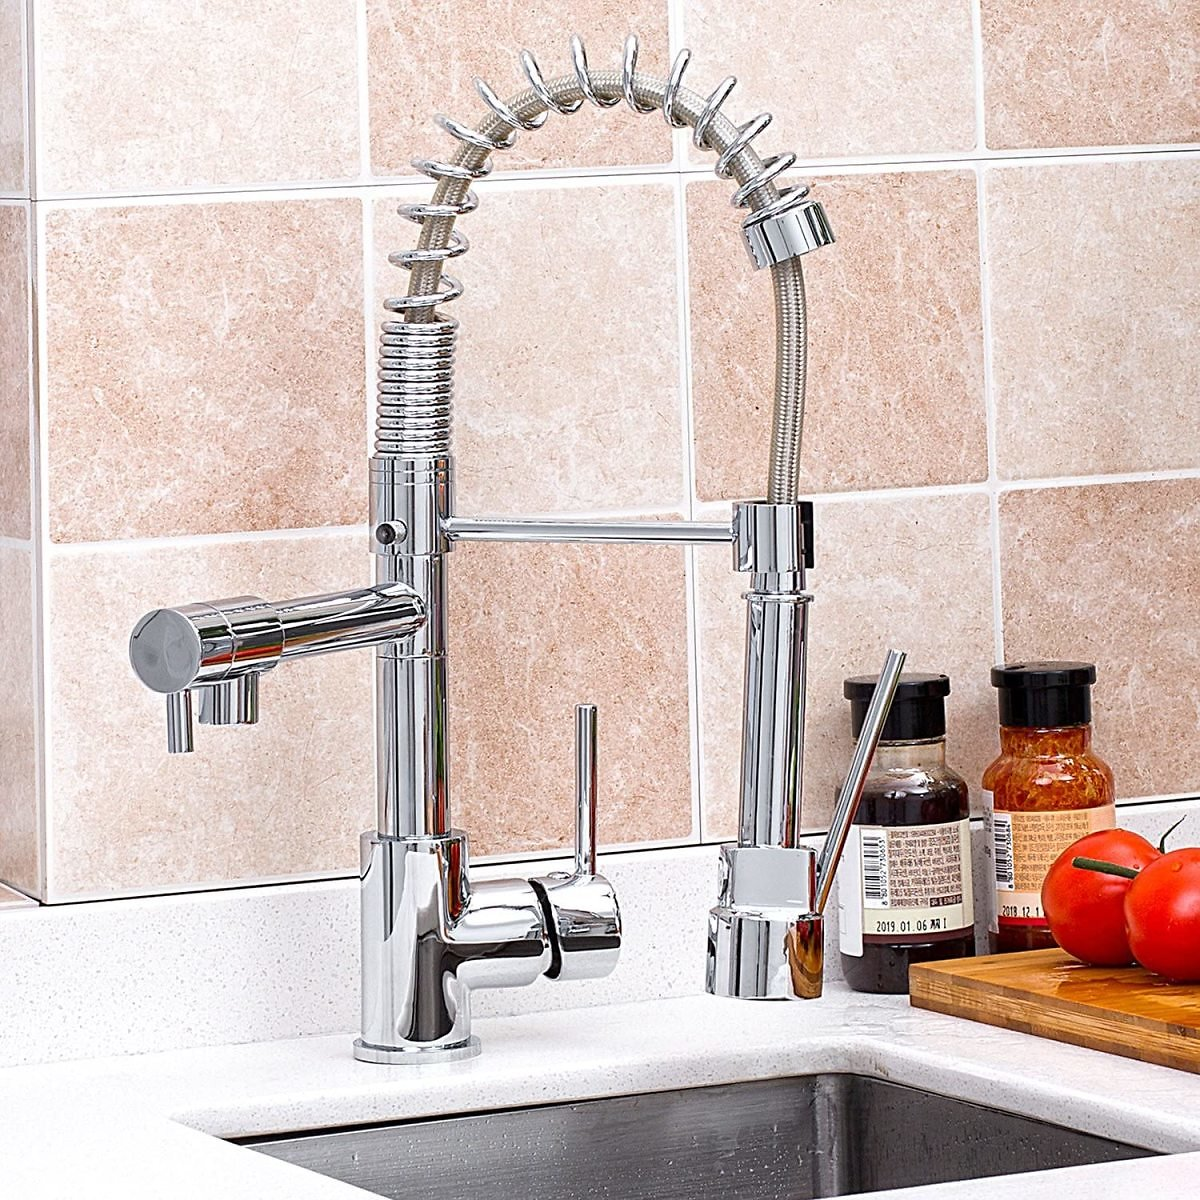 KAIMA Pull Down Swivel Spraye and Spout Kitchen Faucet Hight Arc Spring Kitchen Faucet Brass Chrome Finished